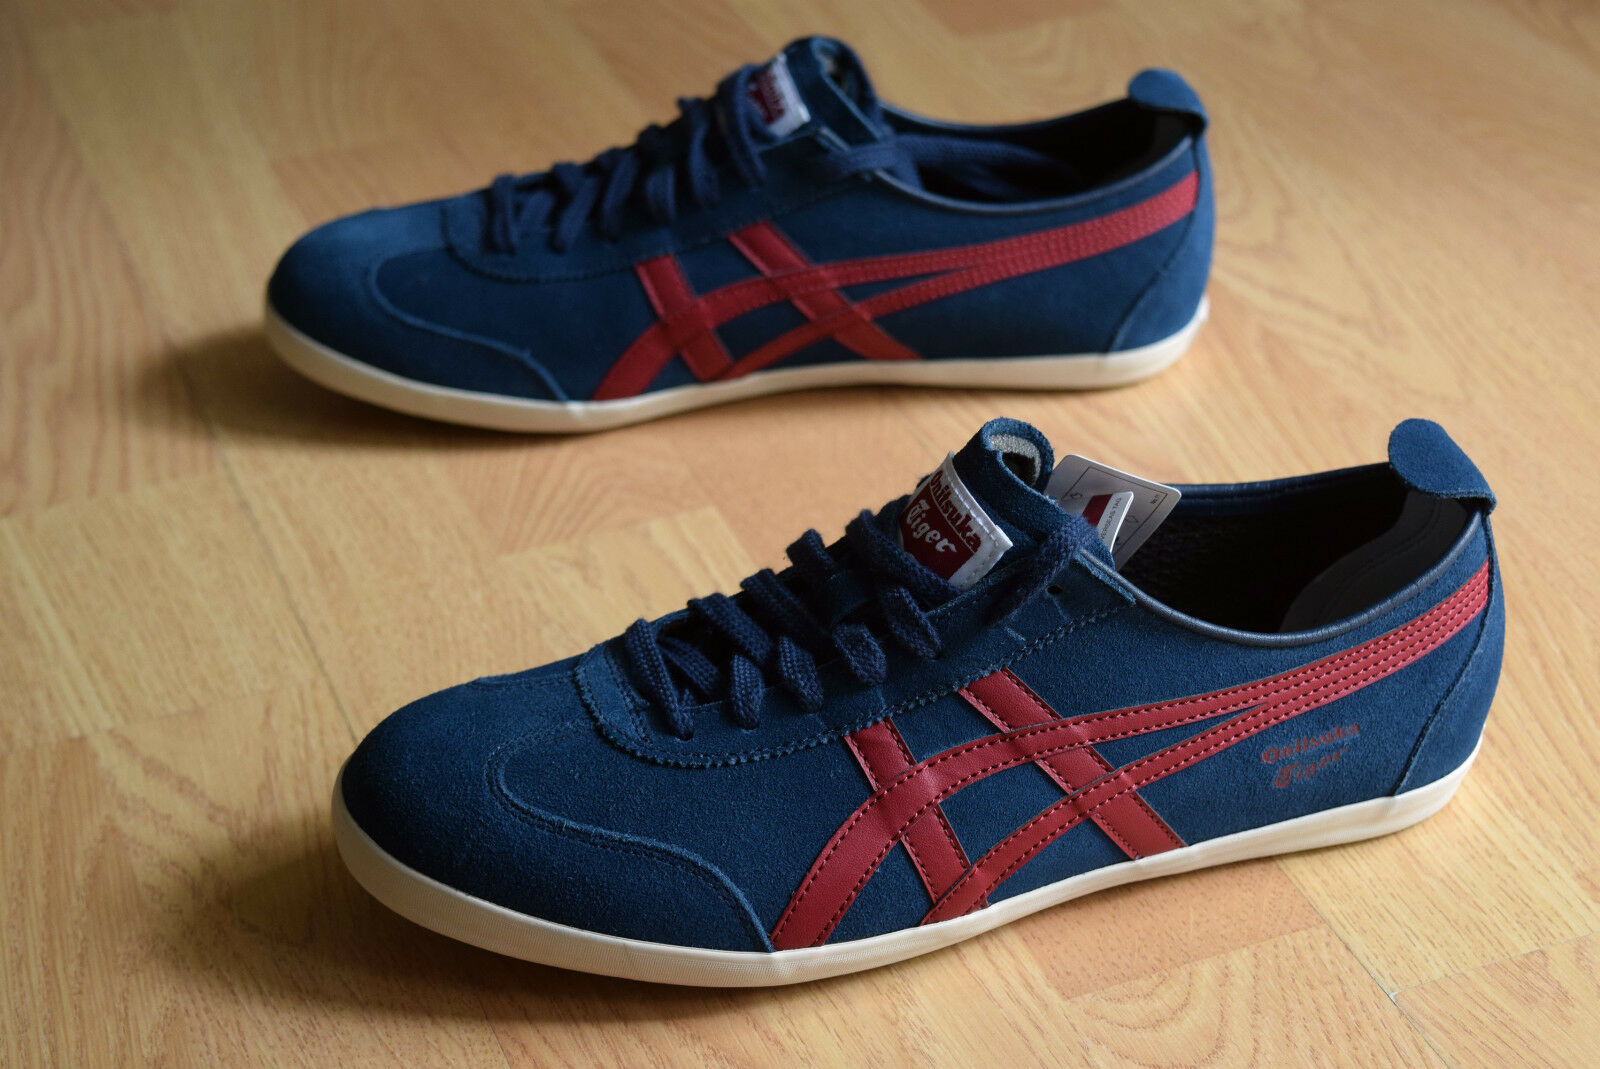 asics Mexico 66 Vulc 40,5 41,5 42 Suede Leather Classic COrsaiR cAliforNia aArOn